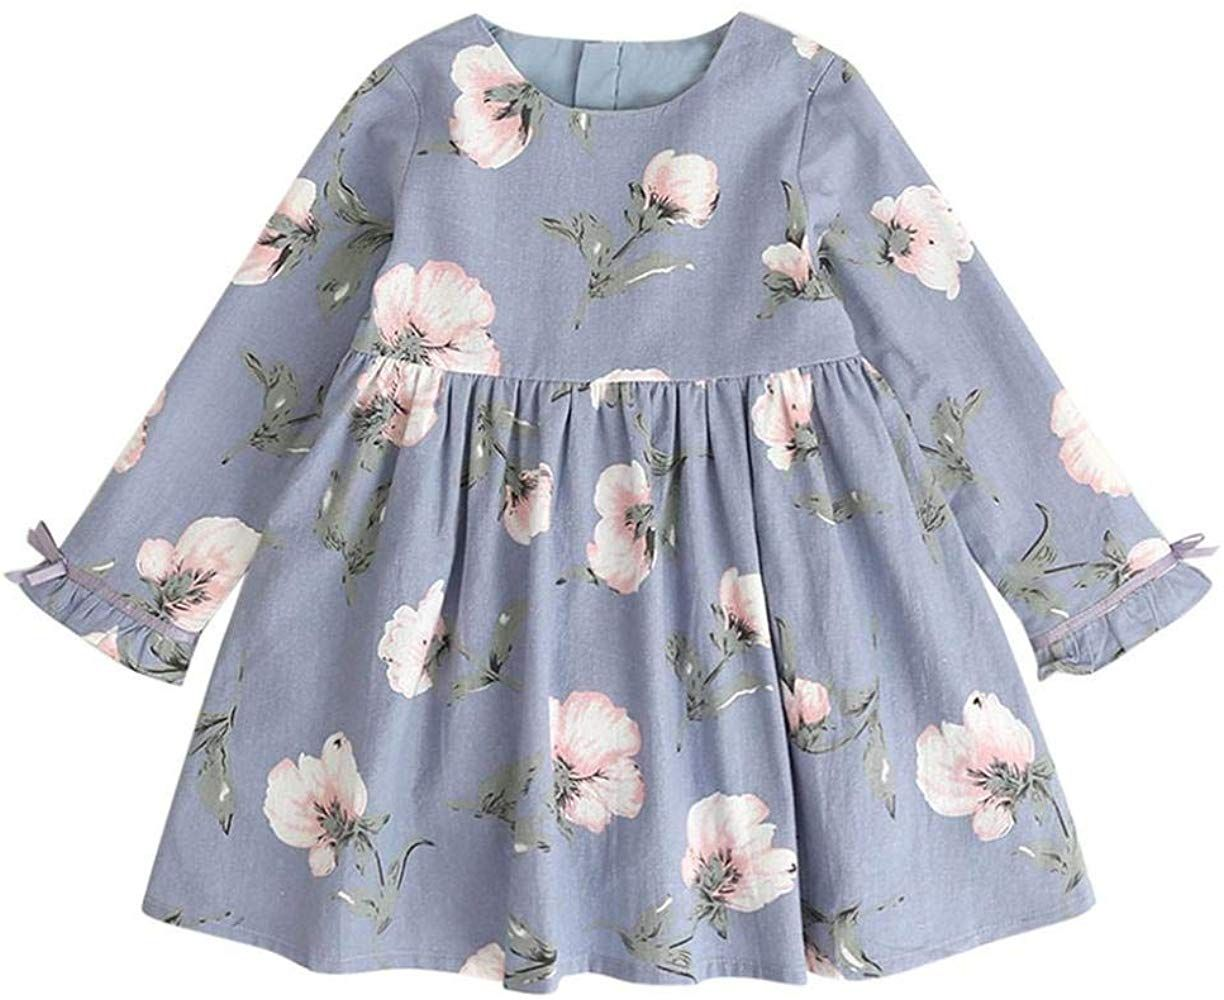 Toddler Baby Kid Girls Long Sleeve Flower Party Princess Dress Outfits Clothes